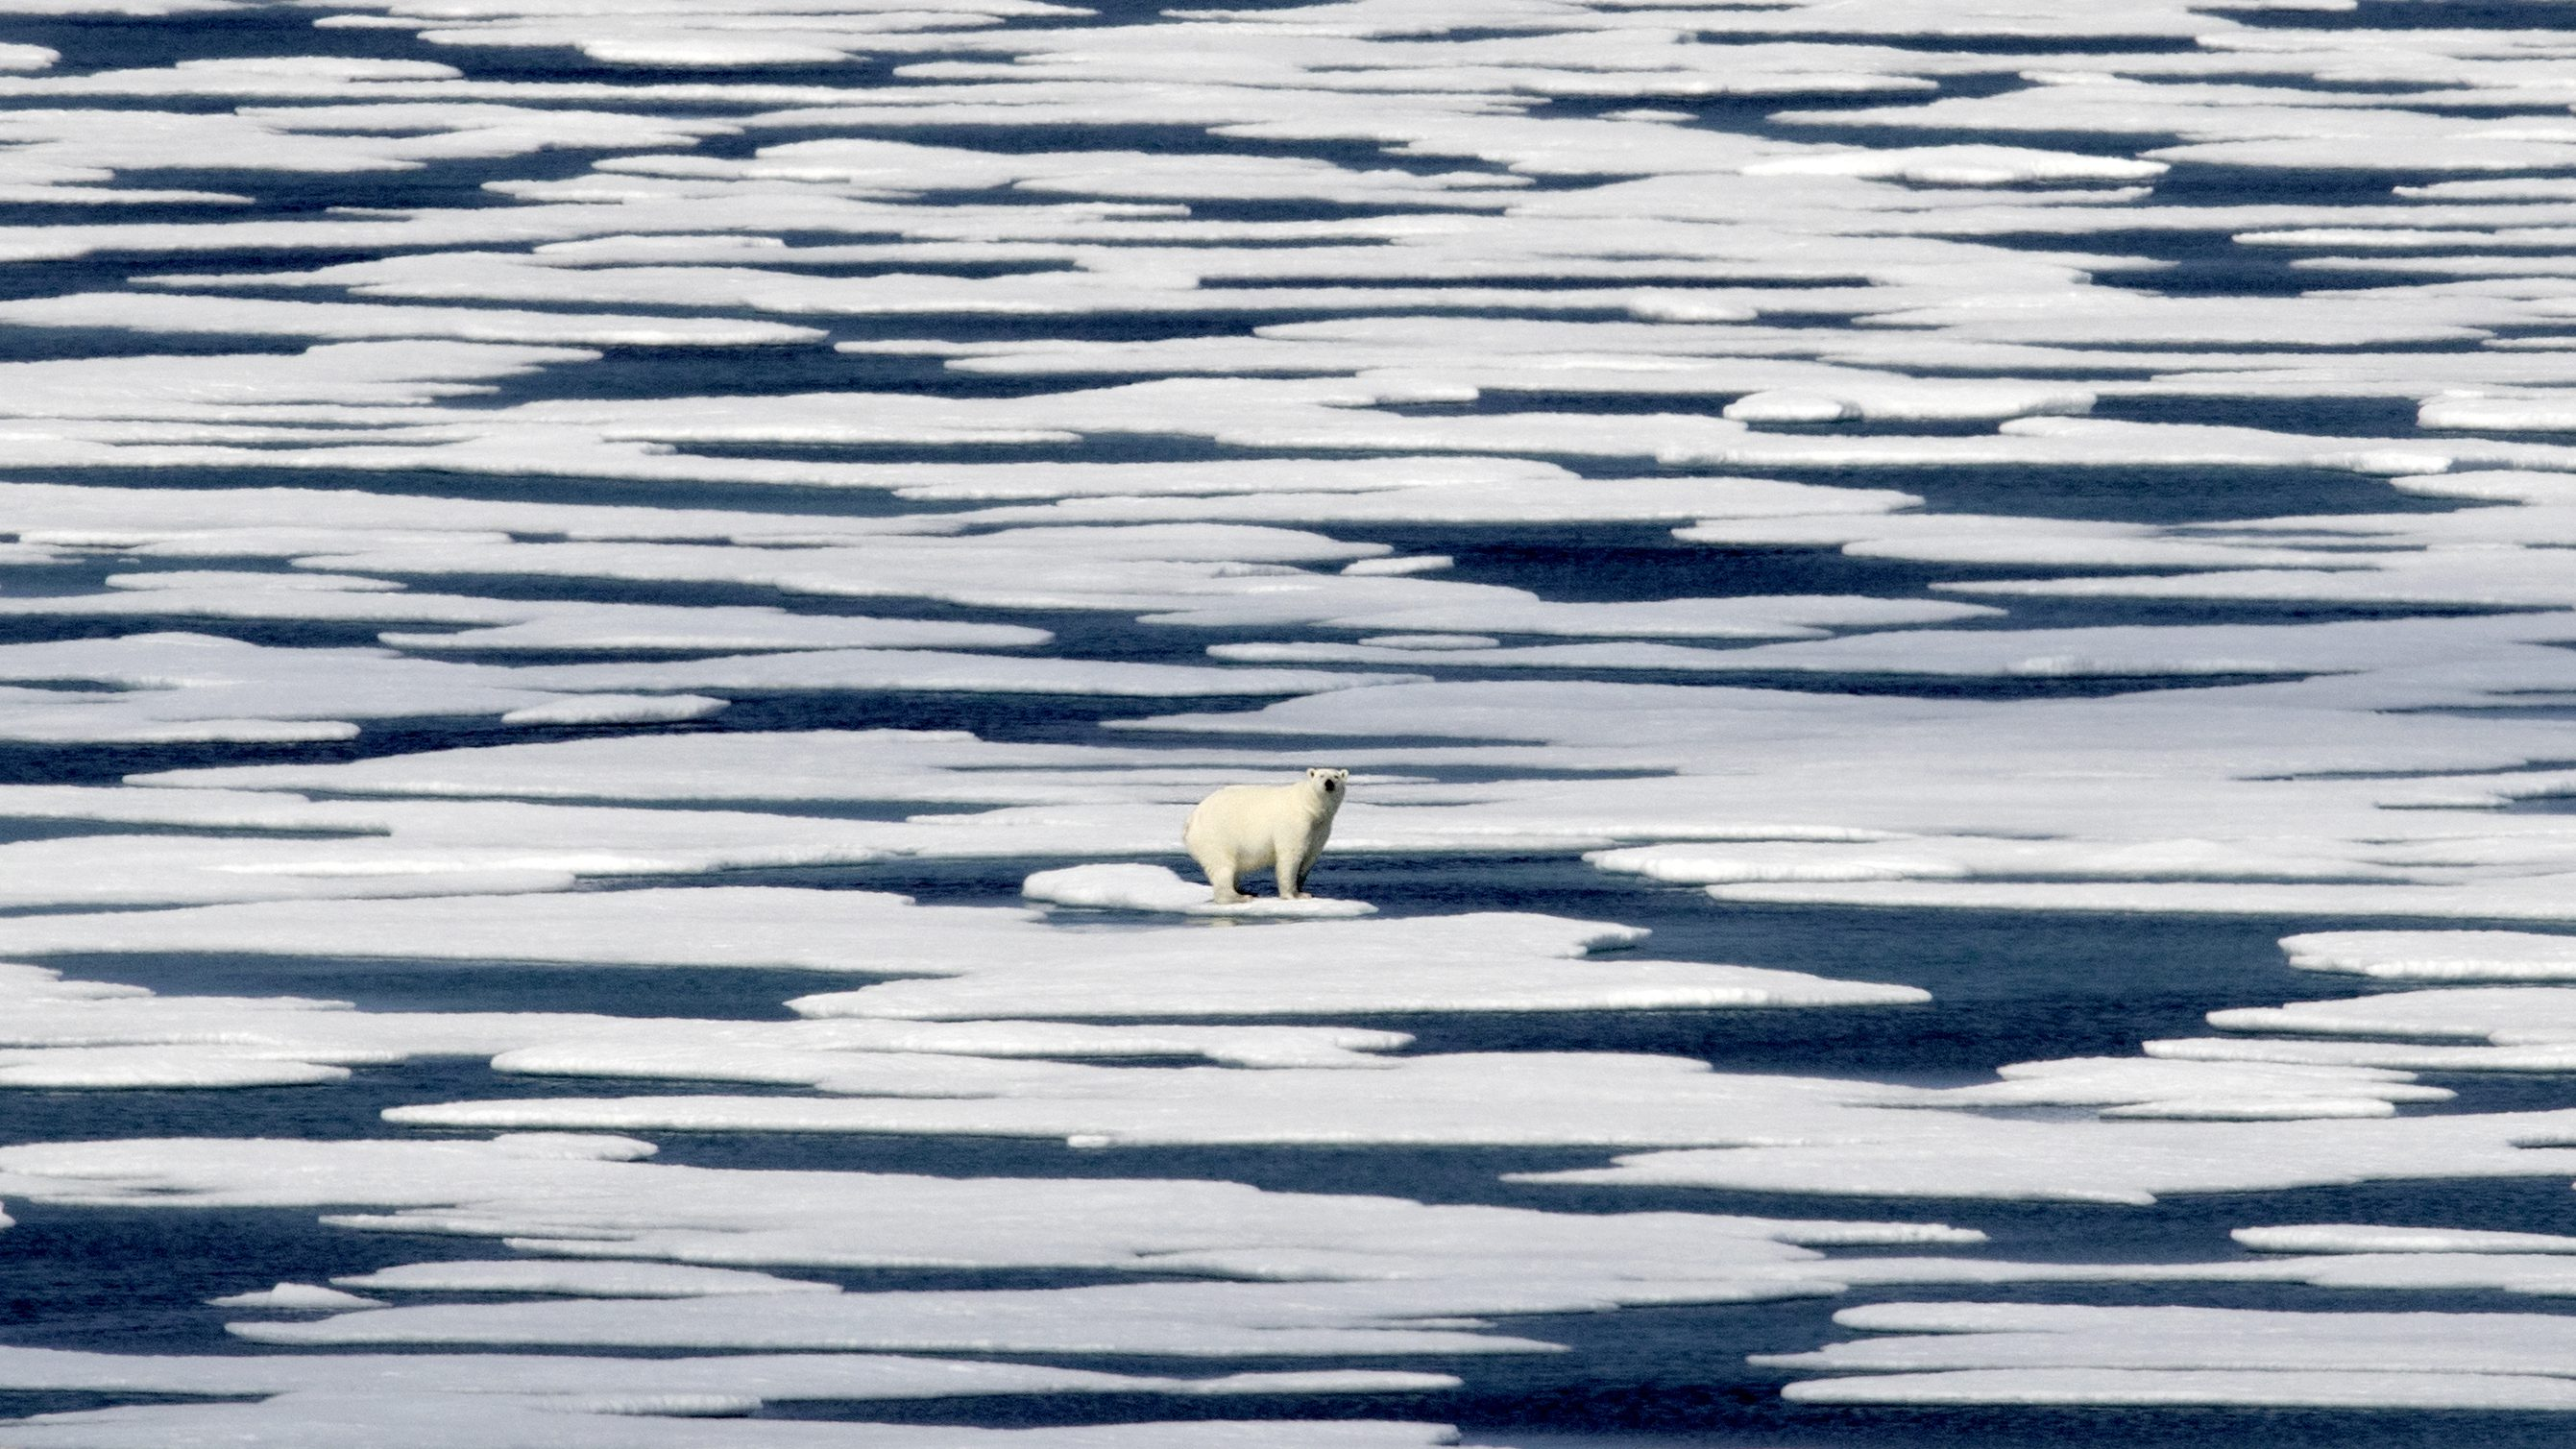 A polar bear stands on broken-up sea ice in the Arctic.